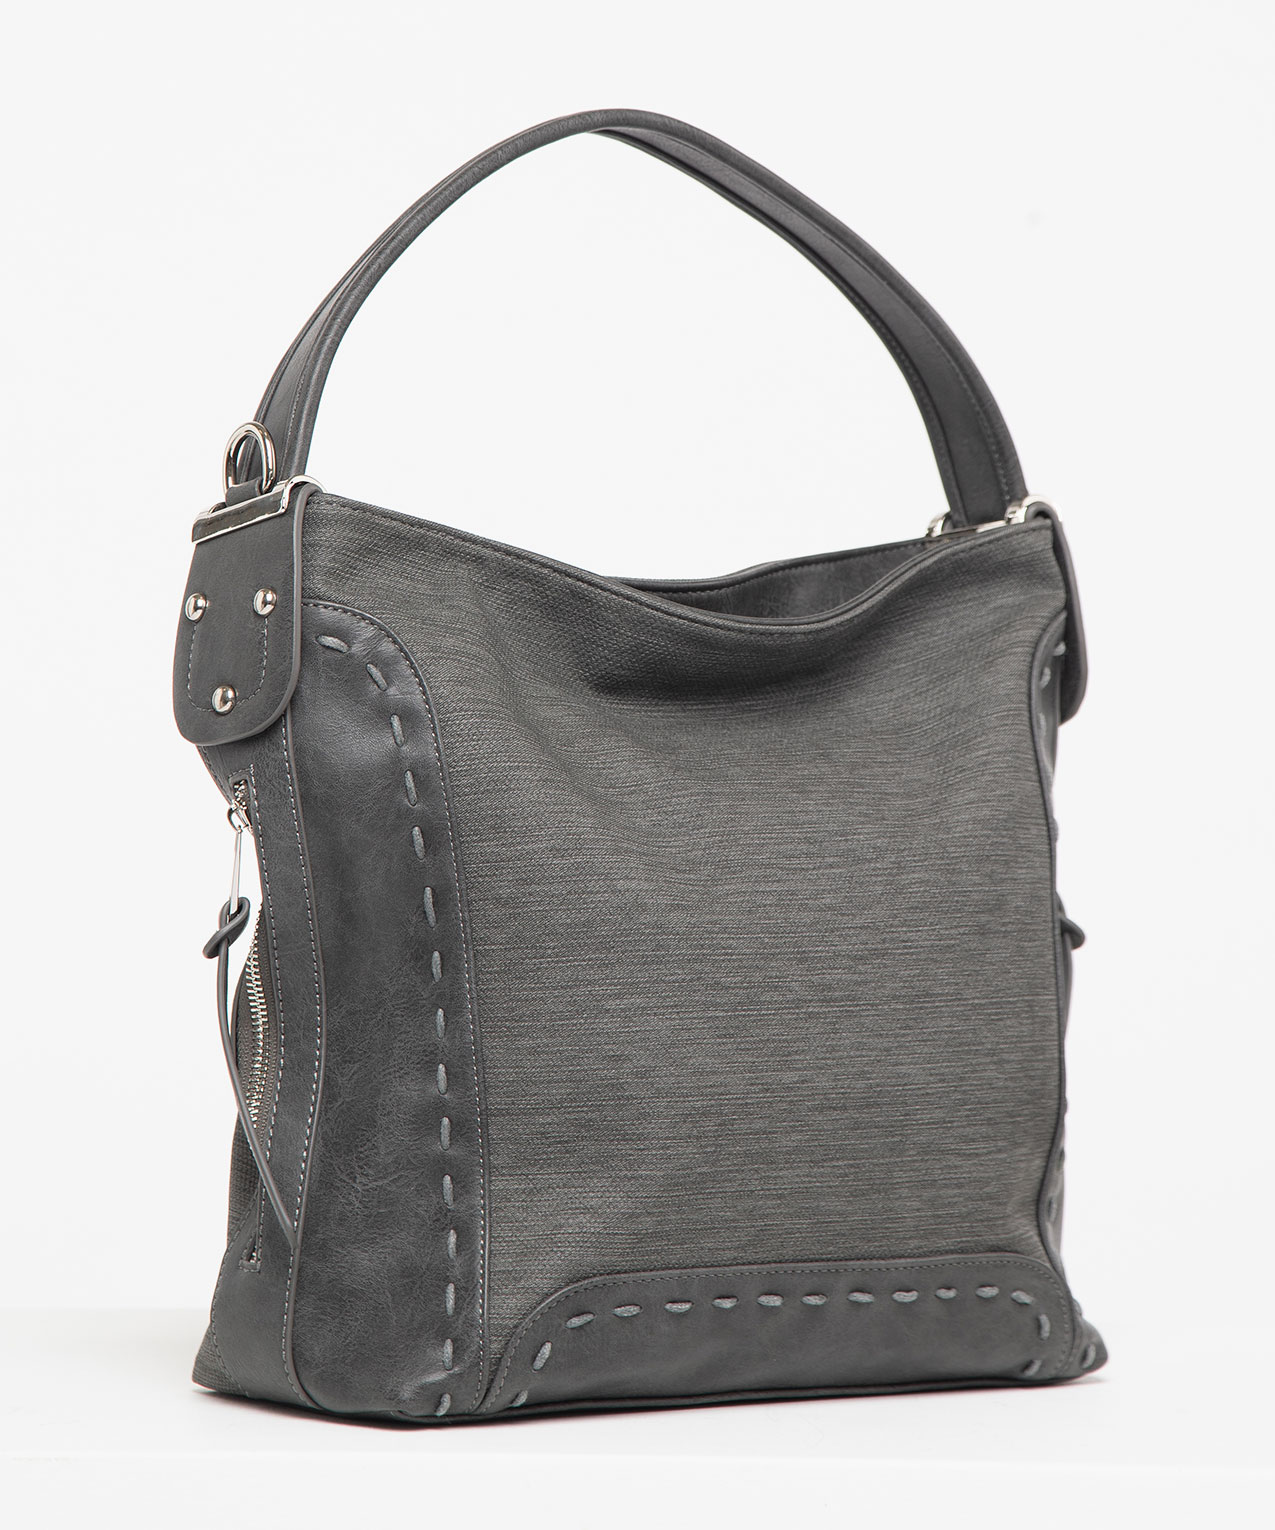 Whipstitch Textured Bucket Handbag, Mid Heathered Grey/Rhodium, hi-res